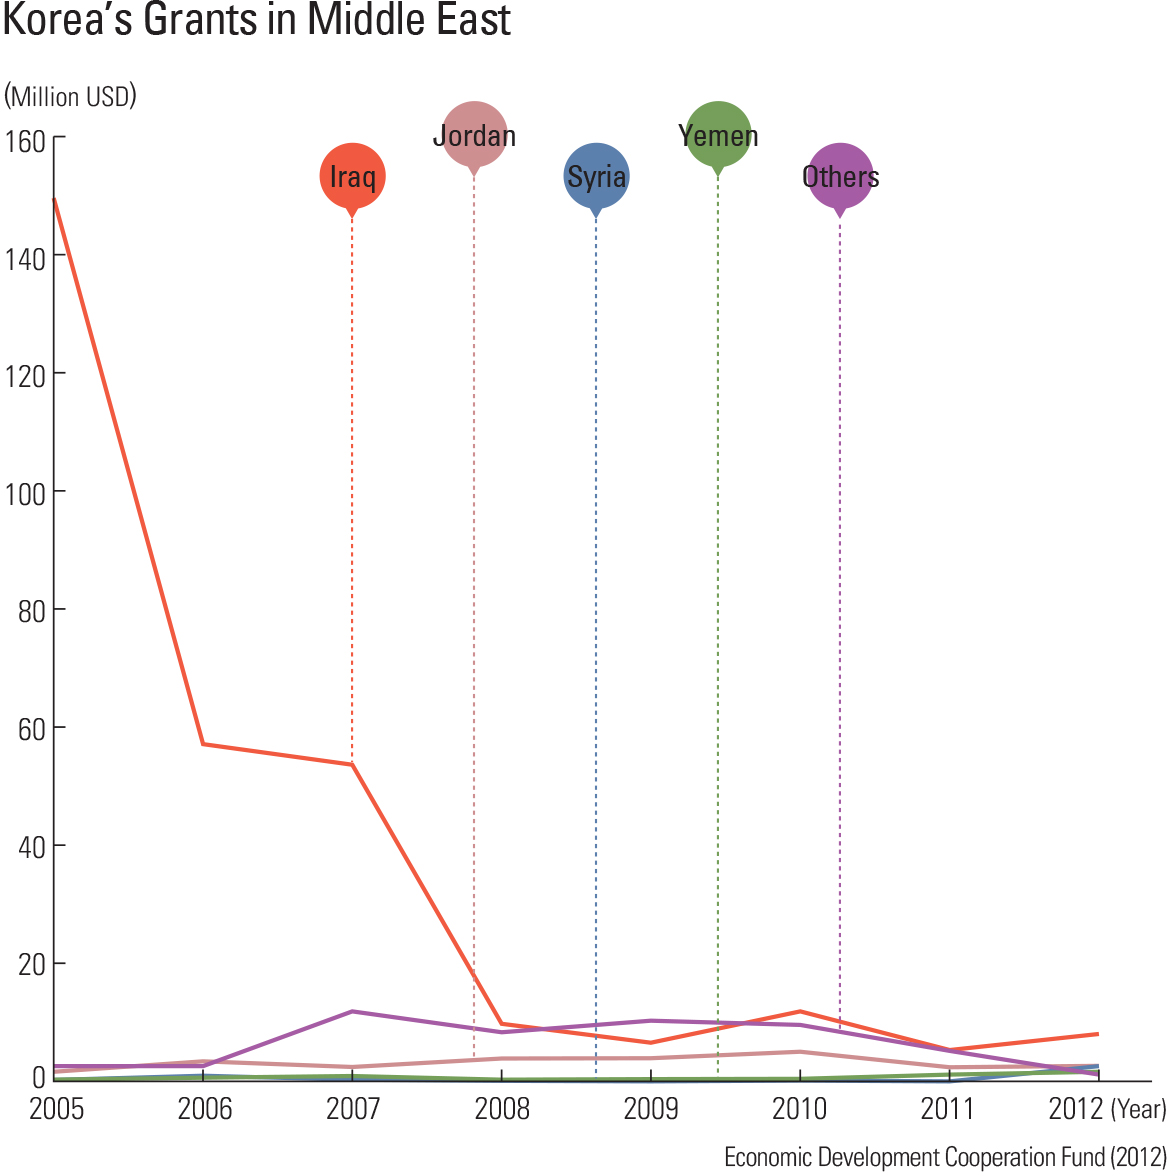 Korea's Grants in Middle East